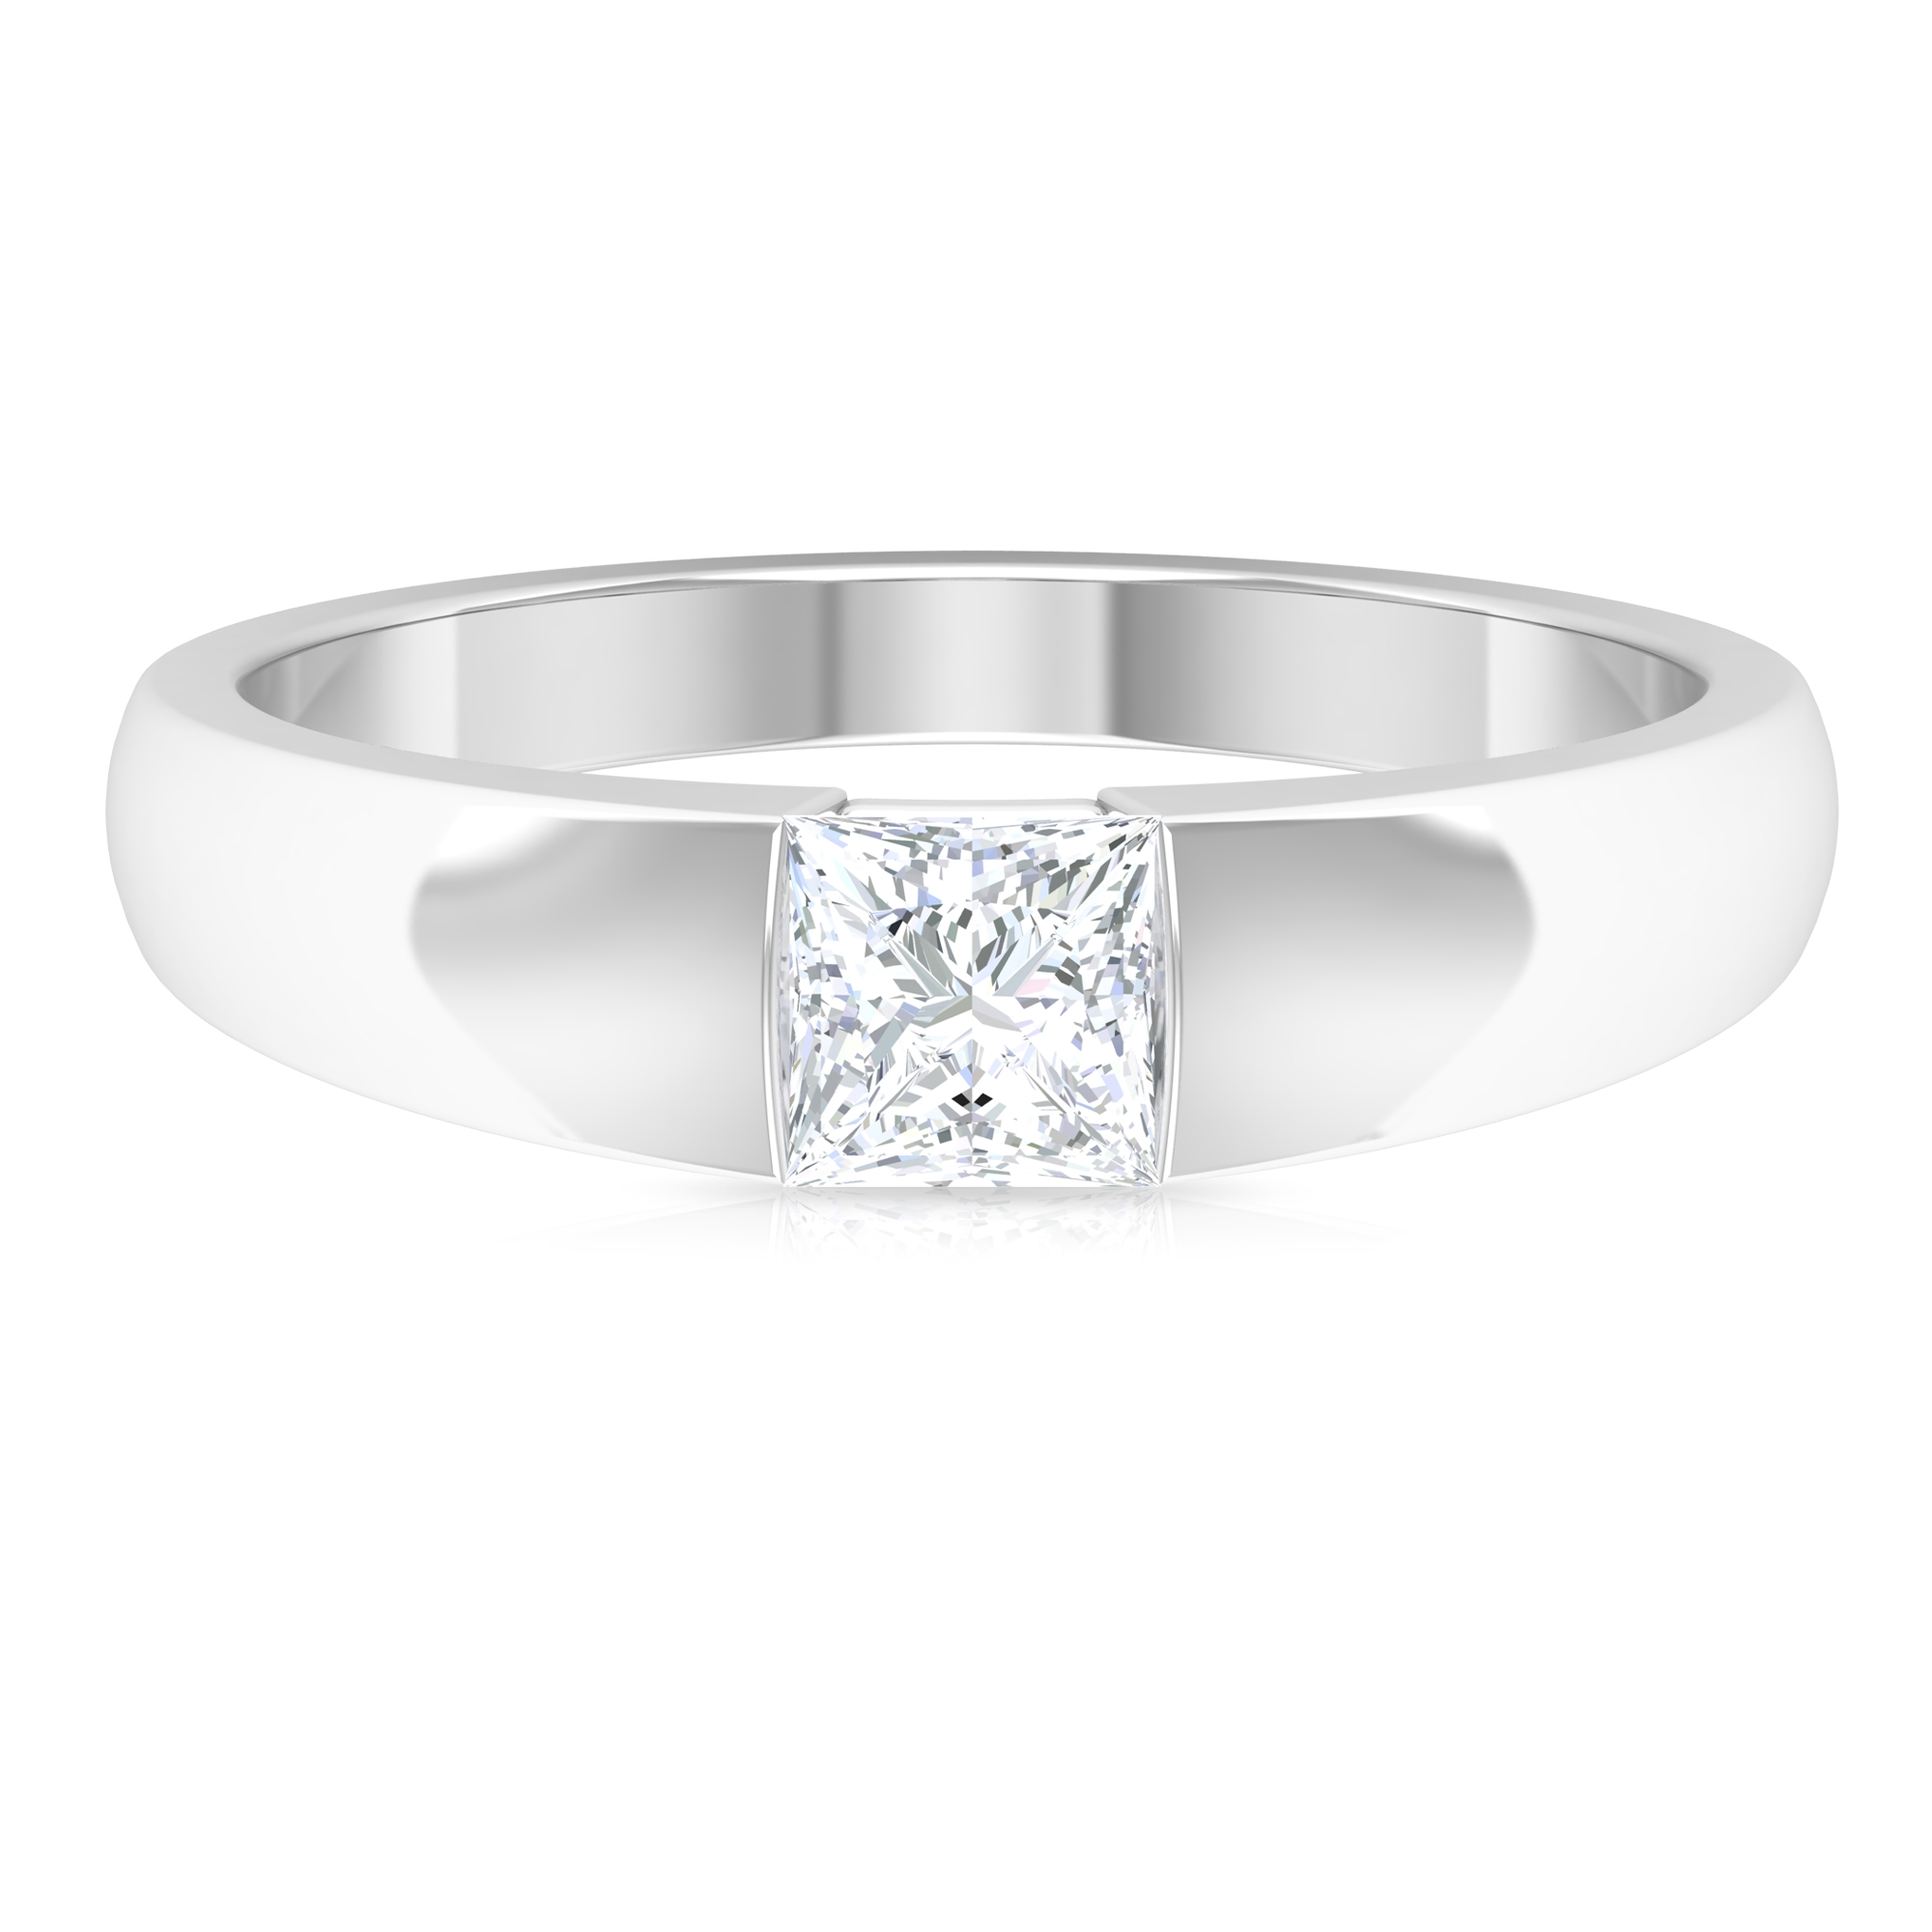 4.5X4.5 MM Princess Cut Diamond Solitaire Unisex Band Ring in Tension Mount Setting